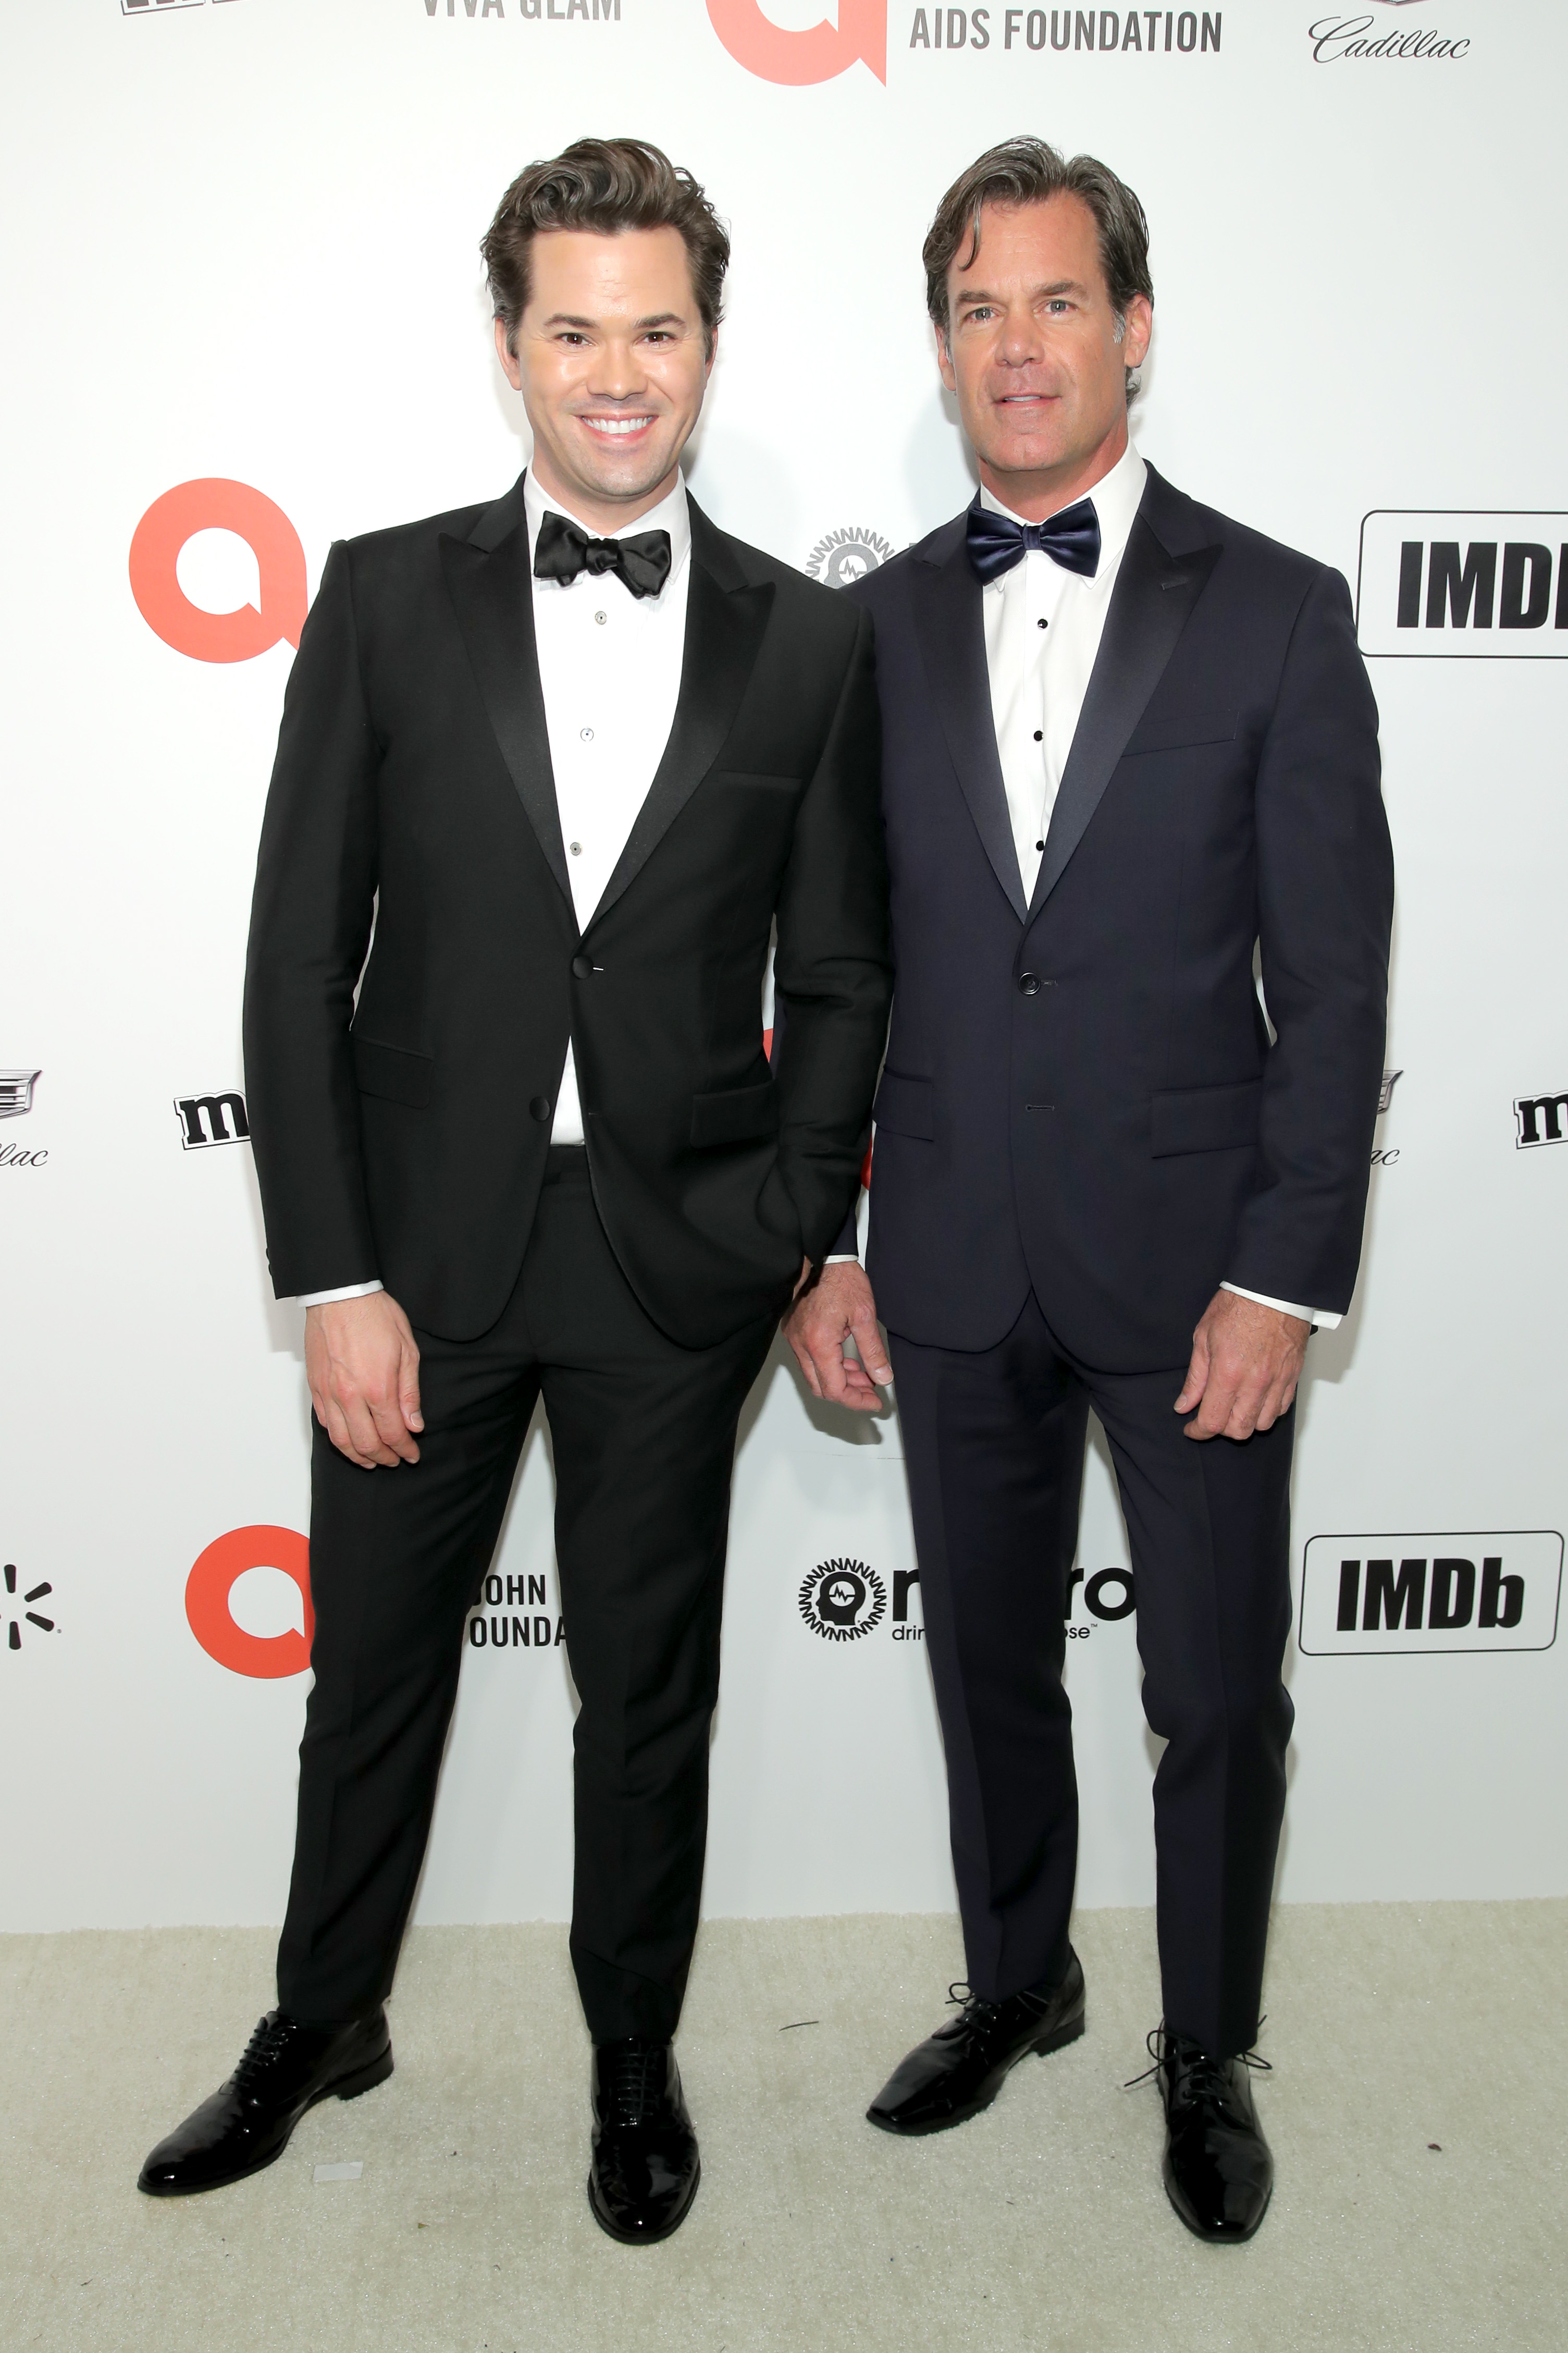 WEST HOLLYWOOD, CALIFORNIA - FEBRUARY 09: (L-R) Andrew Rannells and Tuc Watkins attend the 28th Annual Elton John AIDS Foundation Academy Awards Viewing Party sponsored by IMDb, Neuro Drinks and Walmart on February 09, 2020 in West Hollywood, California. (Photo by Jemal Countess/Getty Images)